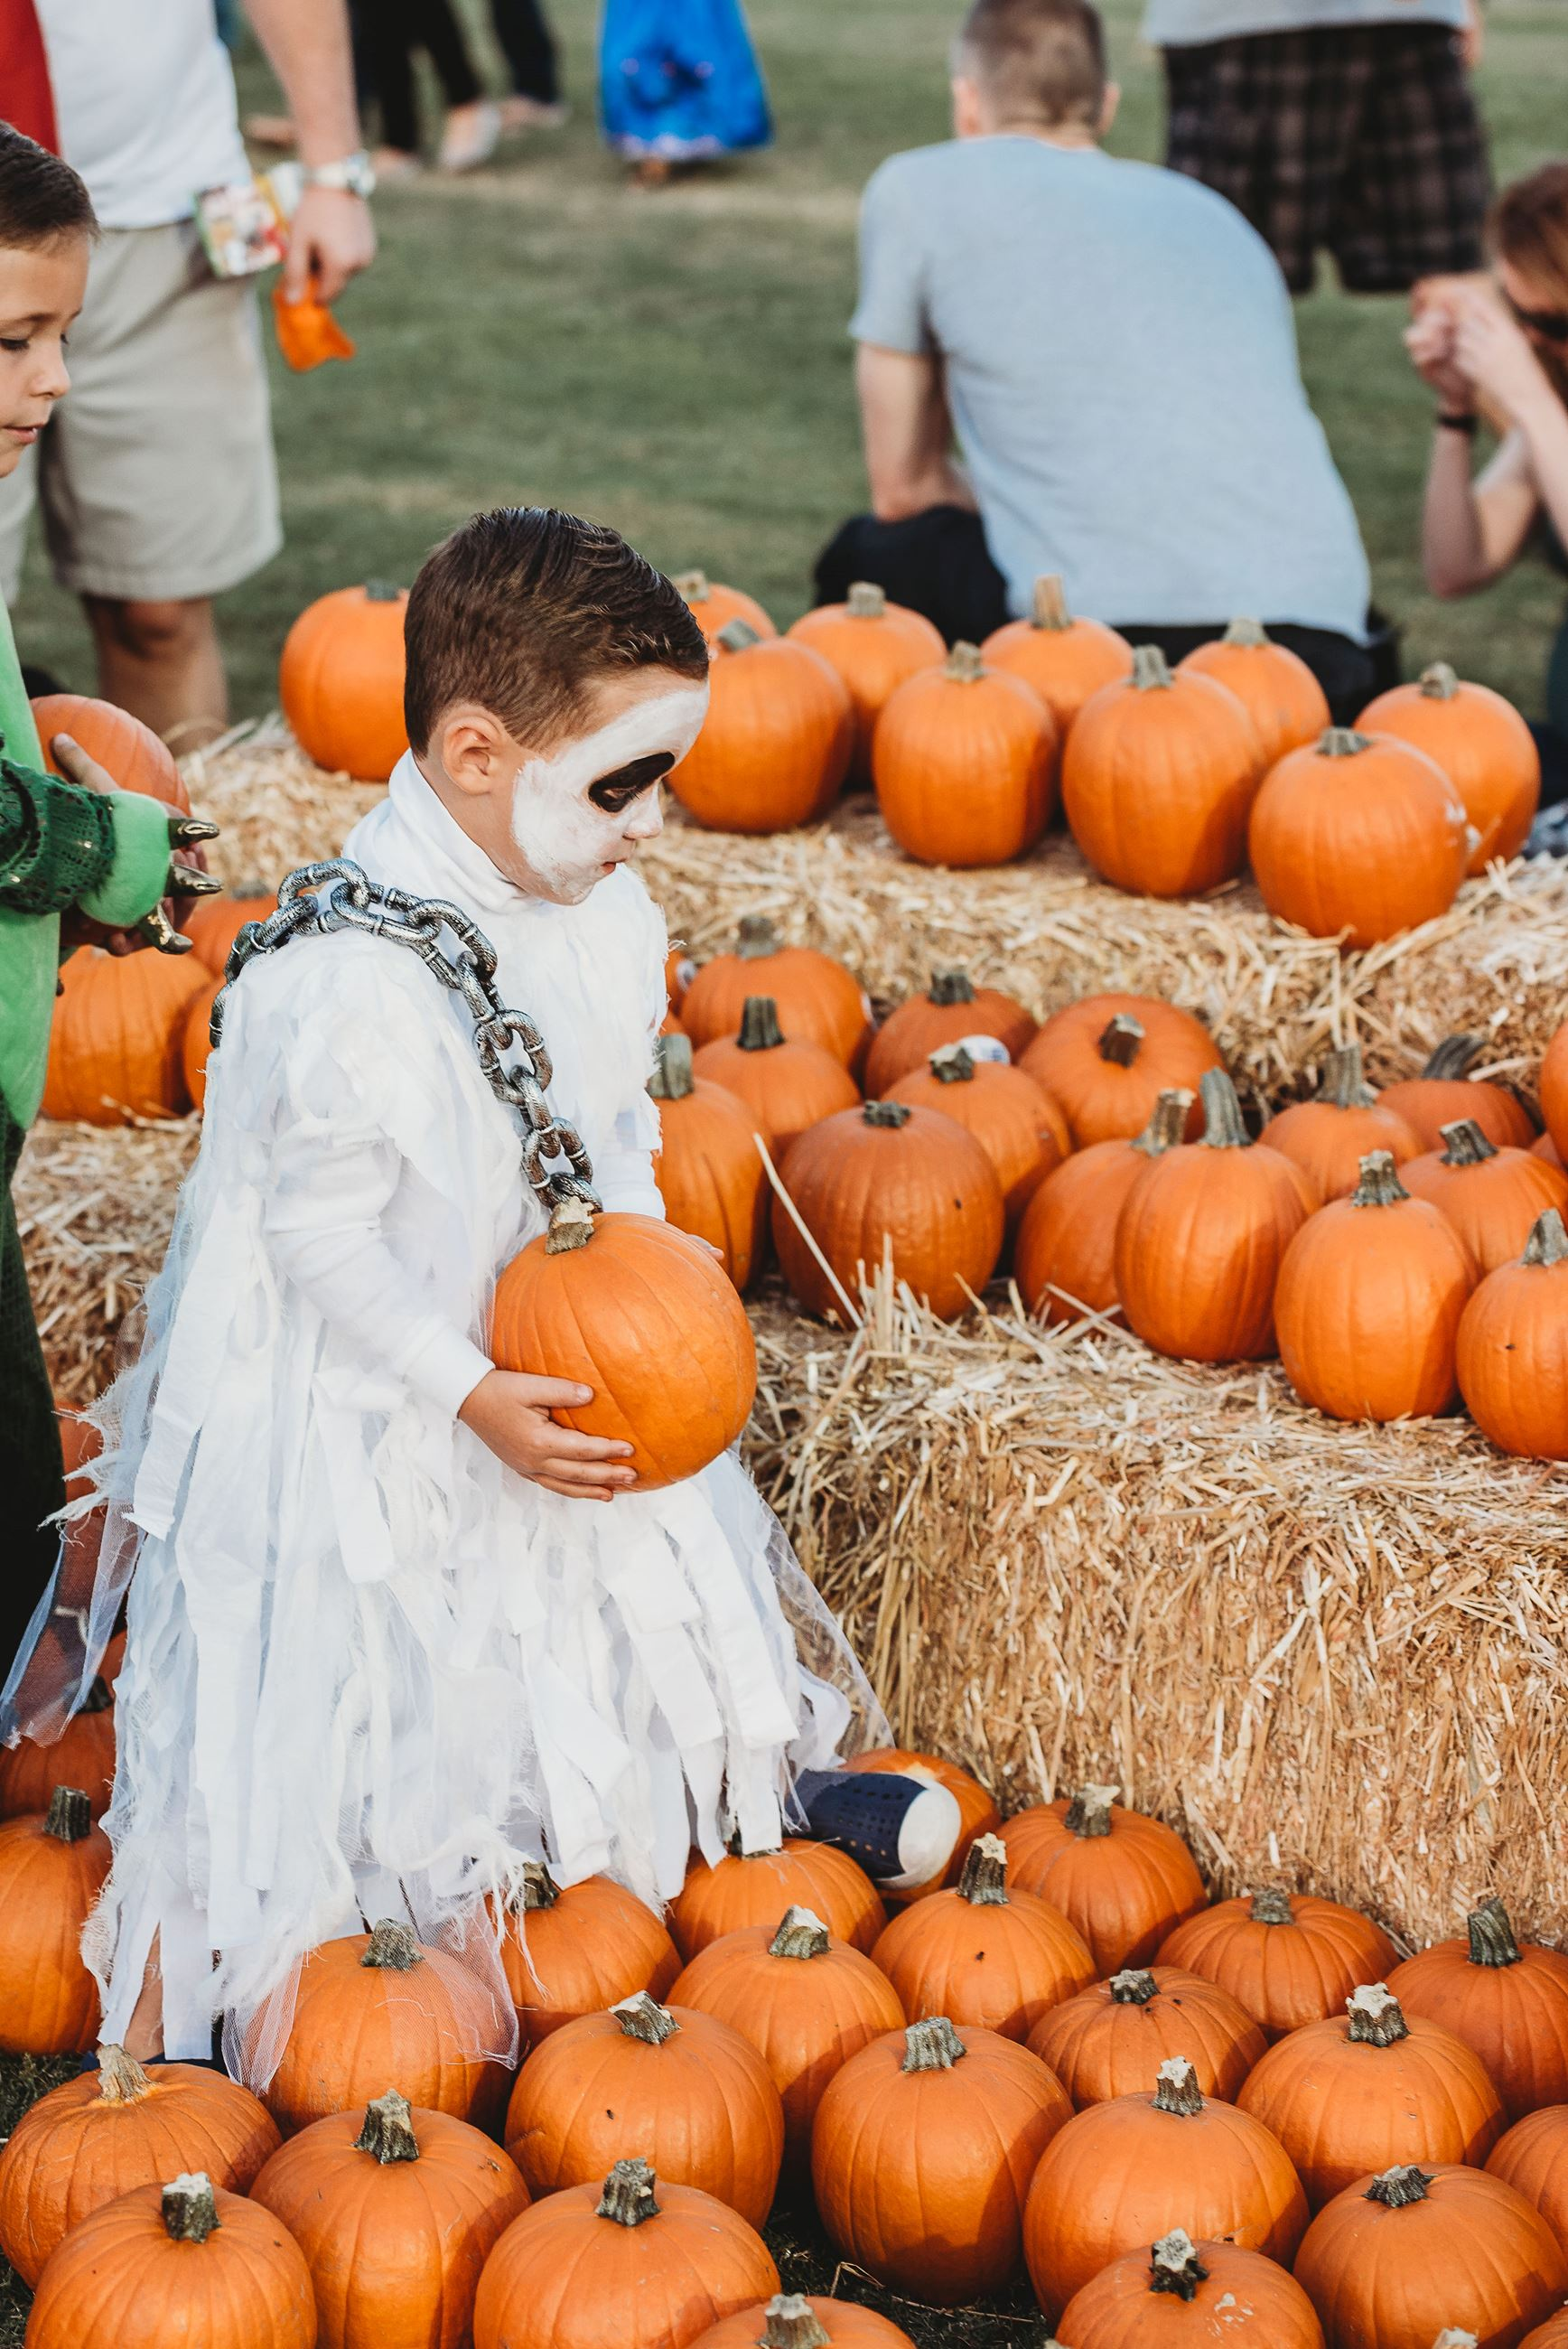 Boy Wearing Ghostly Face Paint Holds a Pumpkin